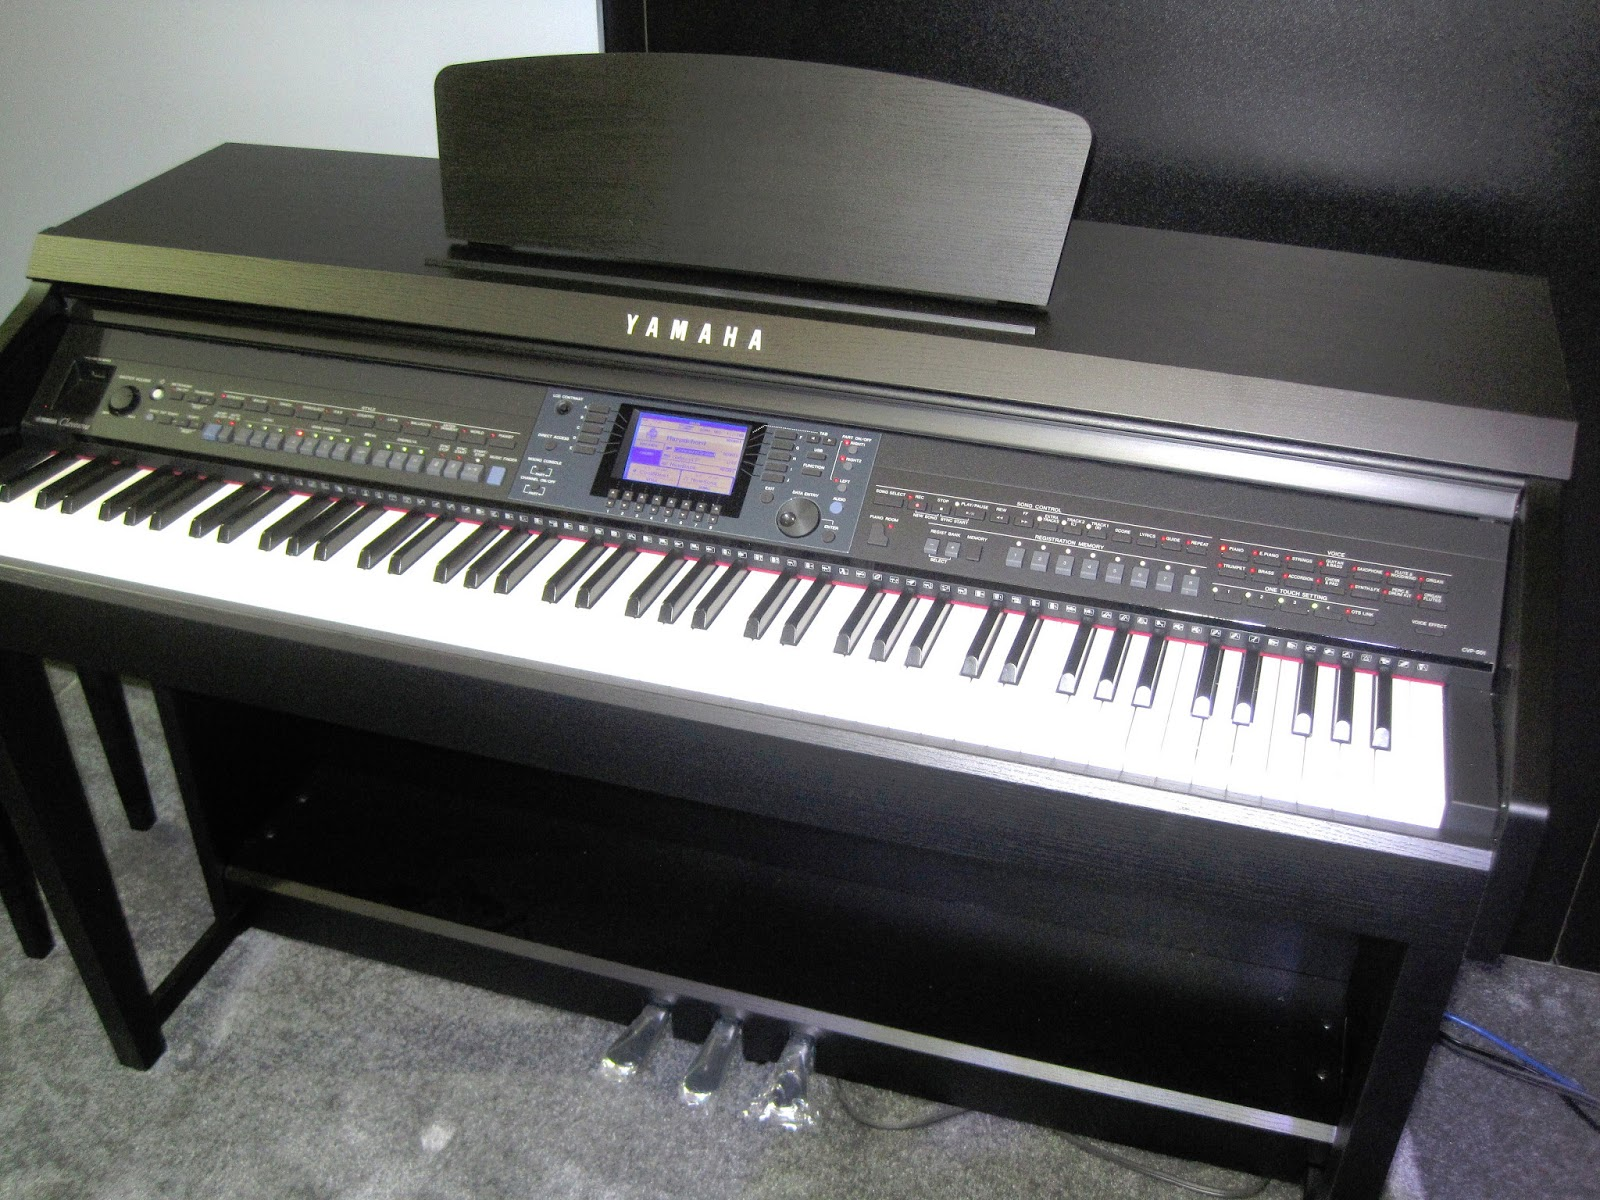 az piano reviews review yamaha cvp601 vs roland hp506